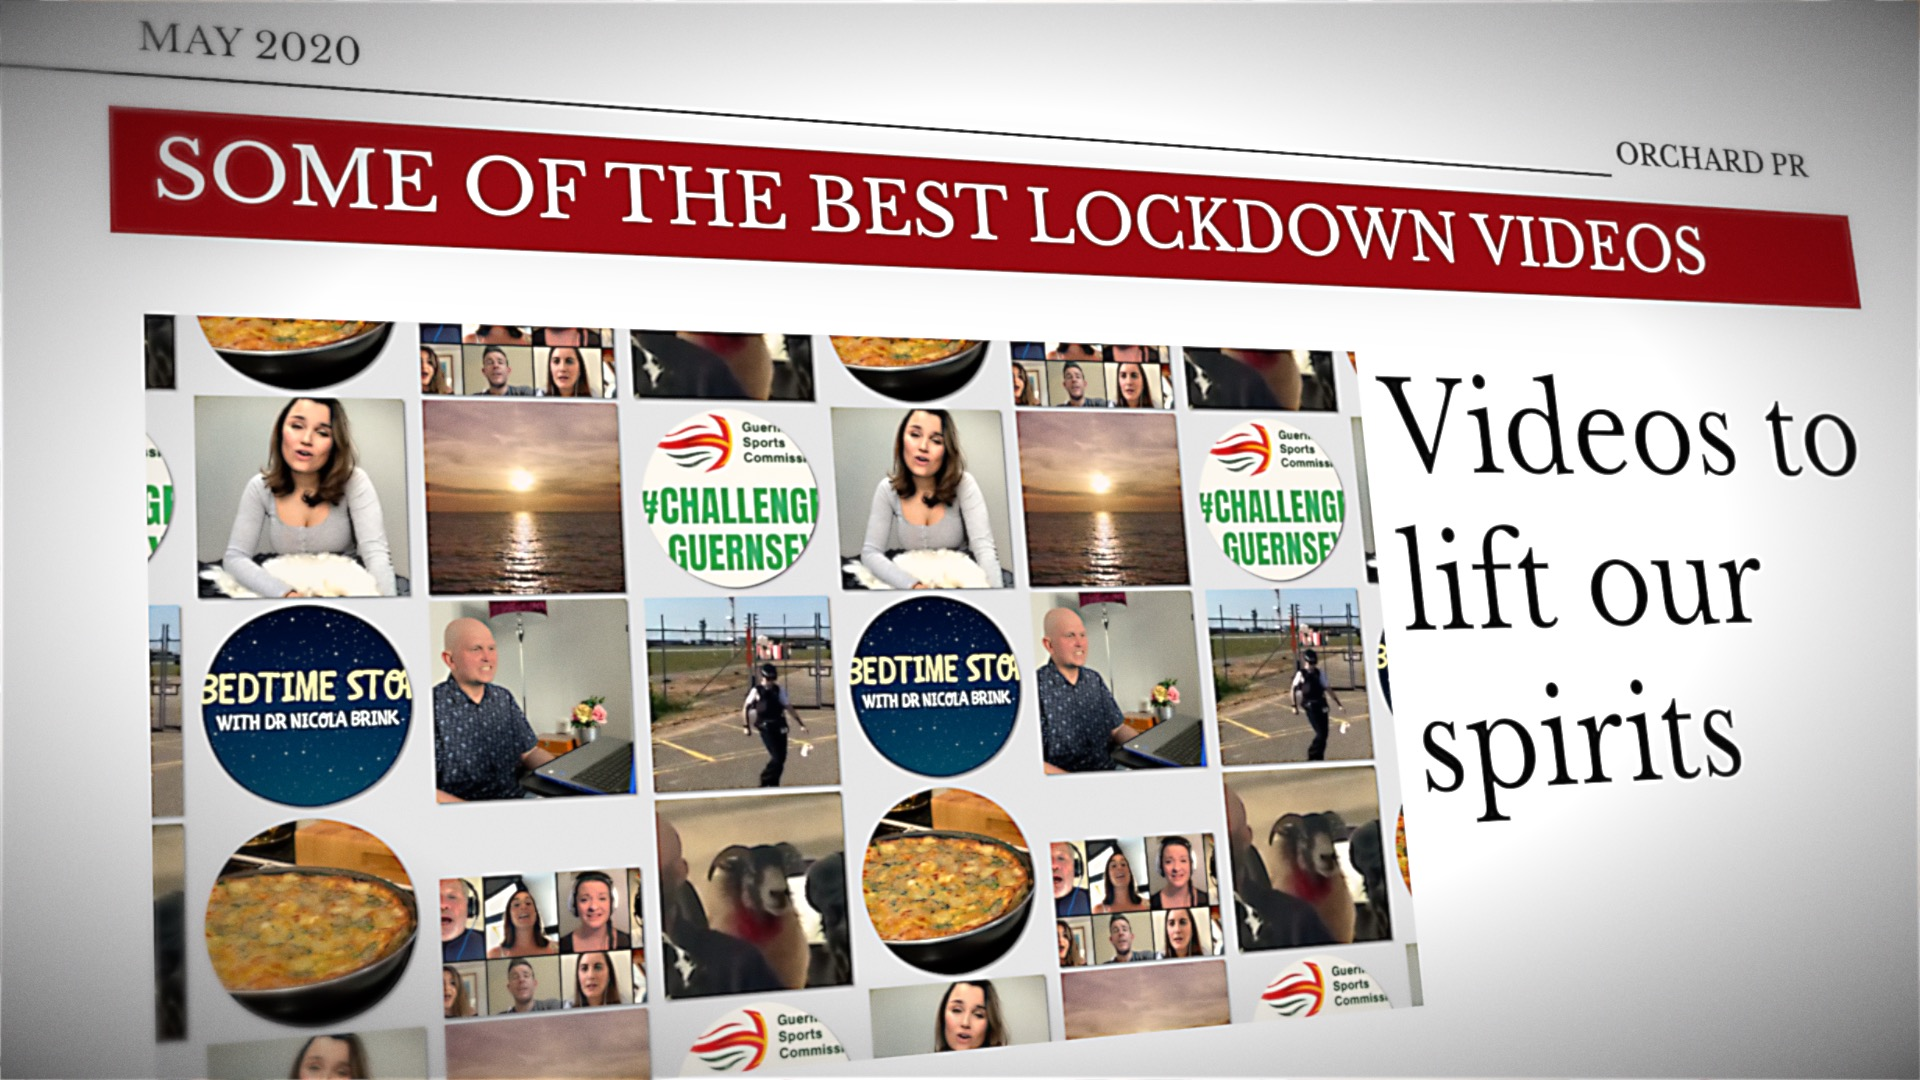 The best lockdown videos